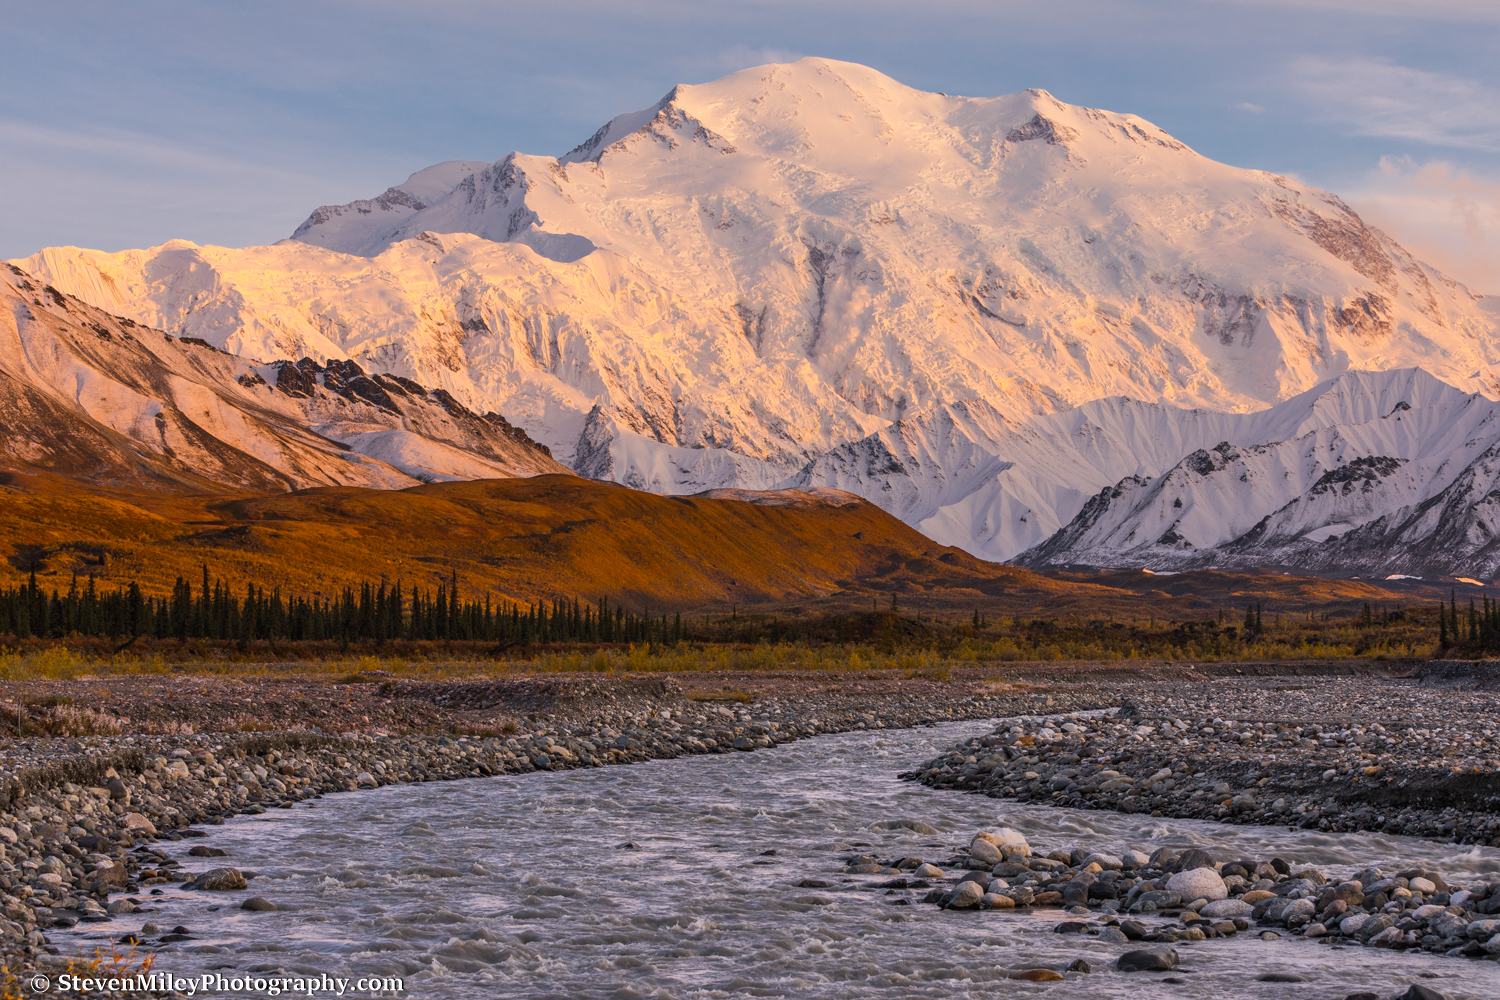 Denali looms over Peters Glacier (coming out of the valley at right) and the Muddy River. An avalanche is visible near the center of Denali's Wickersham Wall.